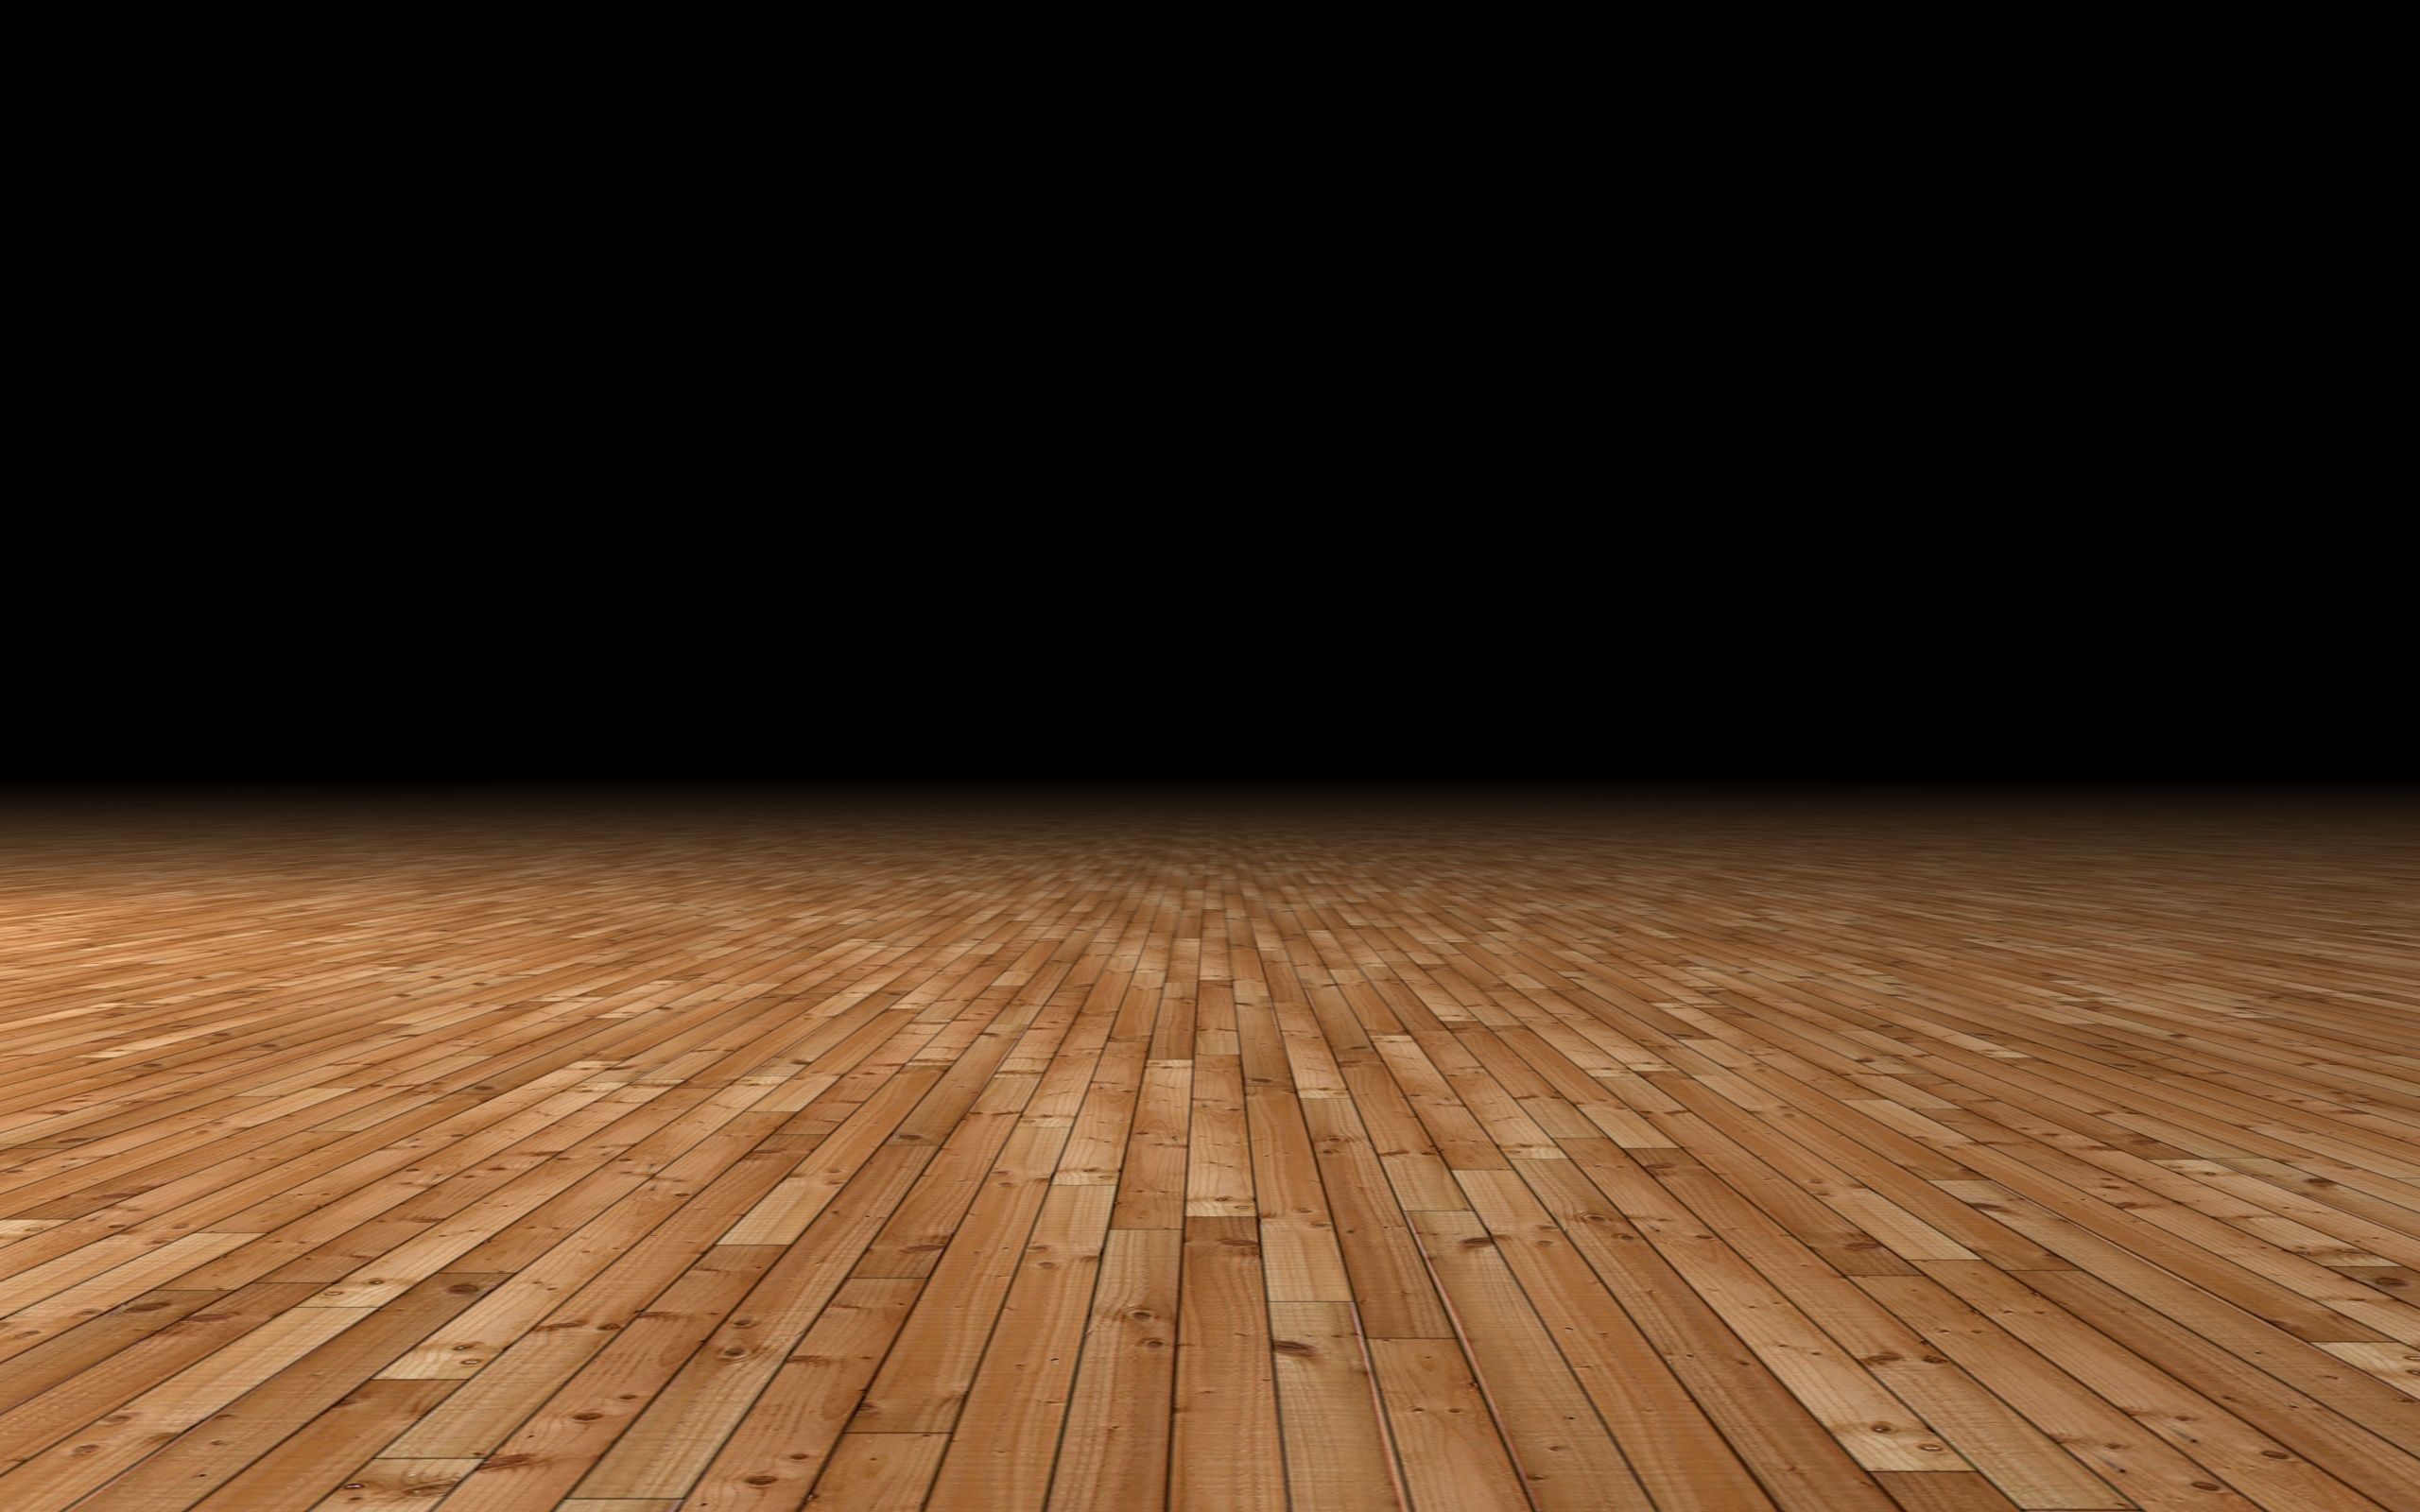 File Basketball Court HDQjpg Anna Rapoport